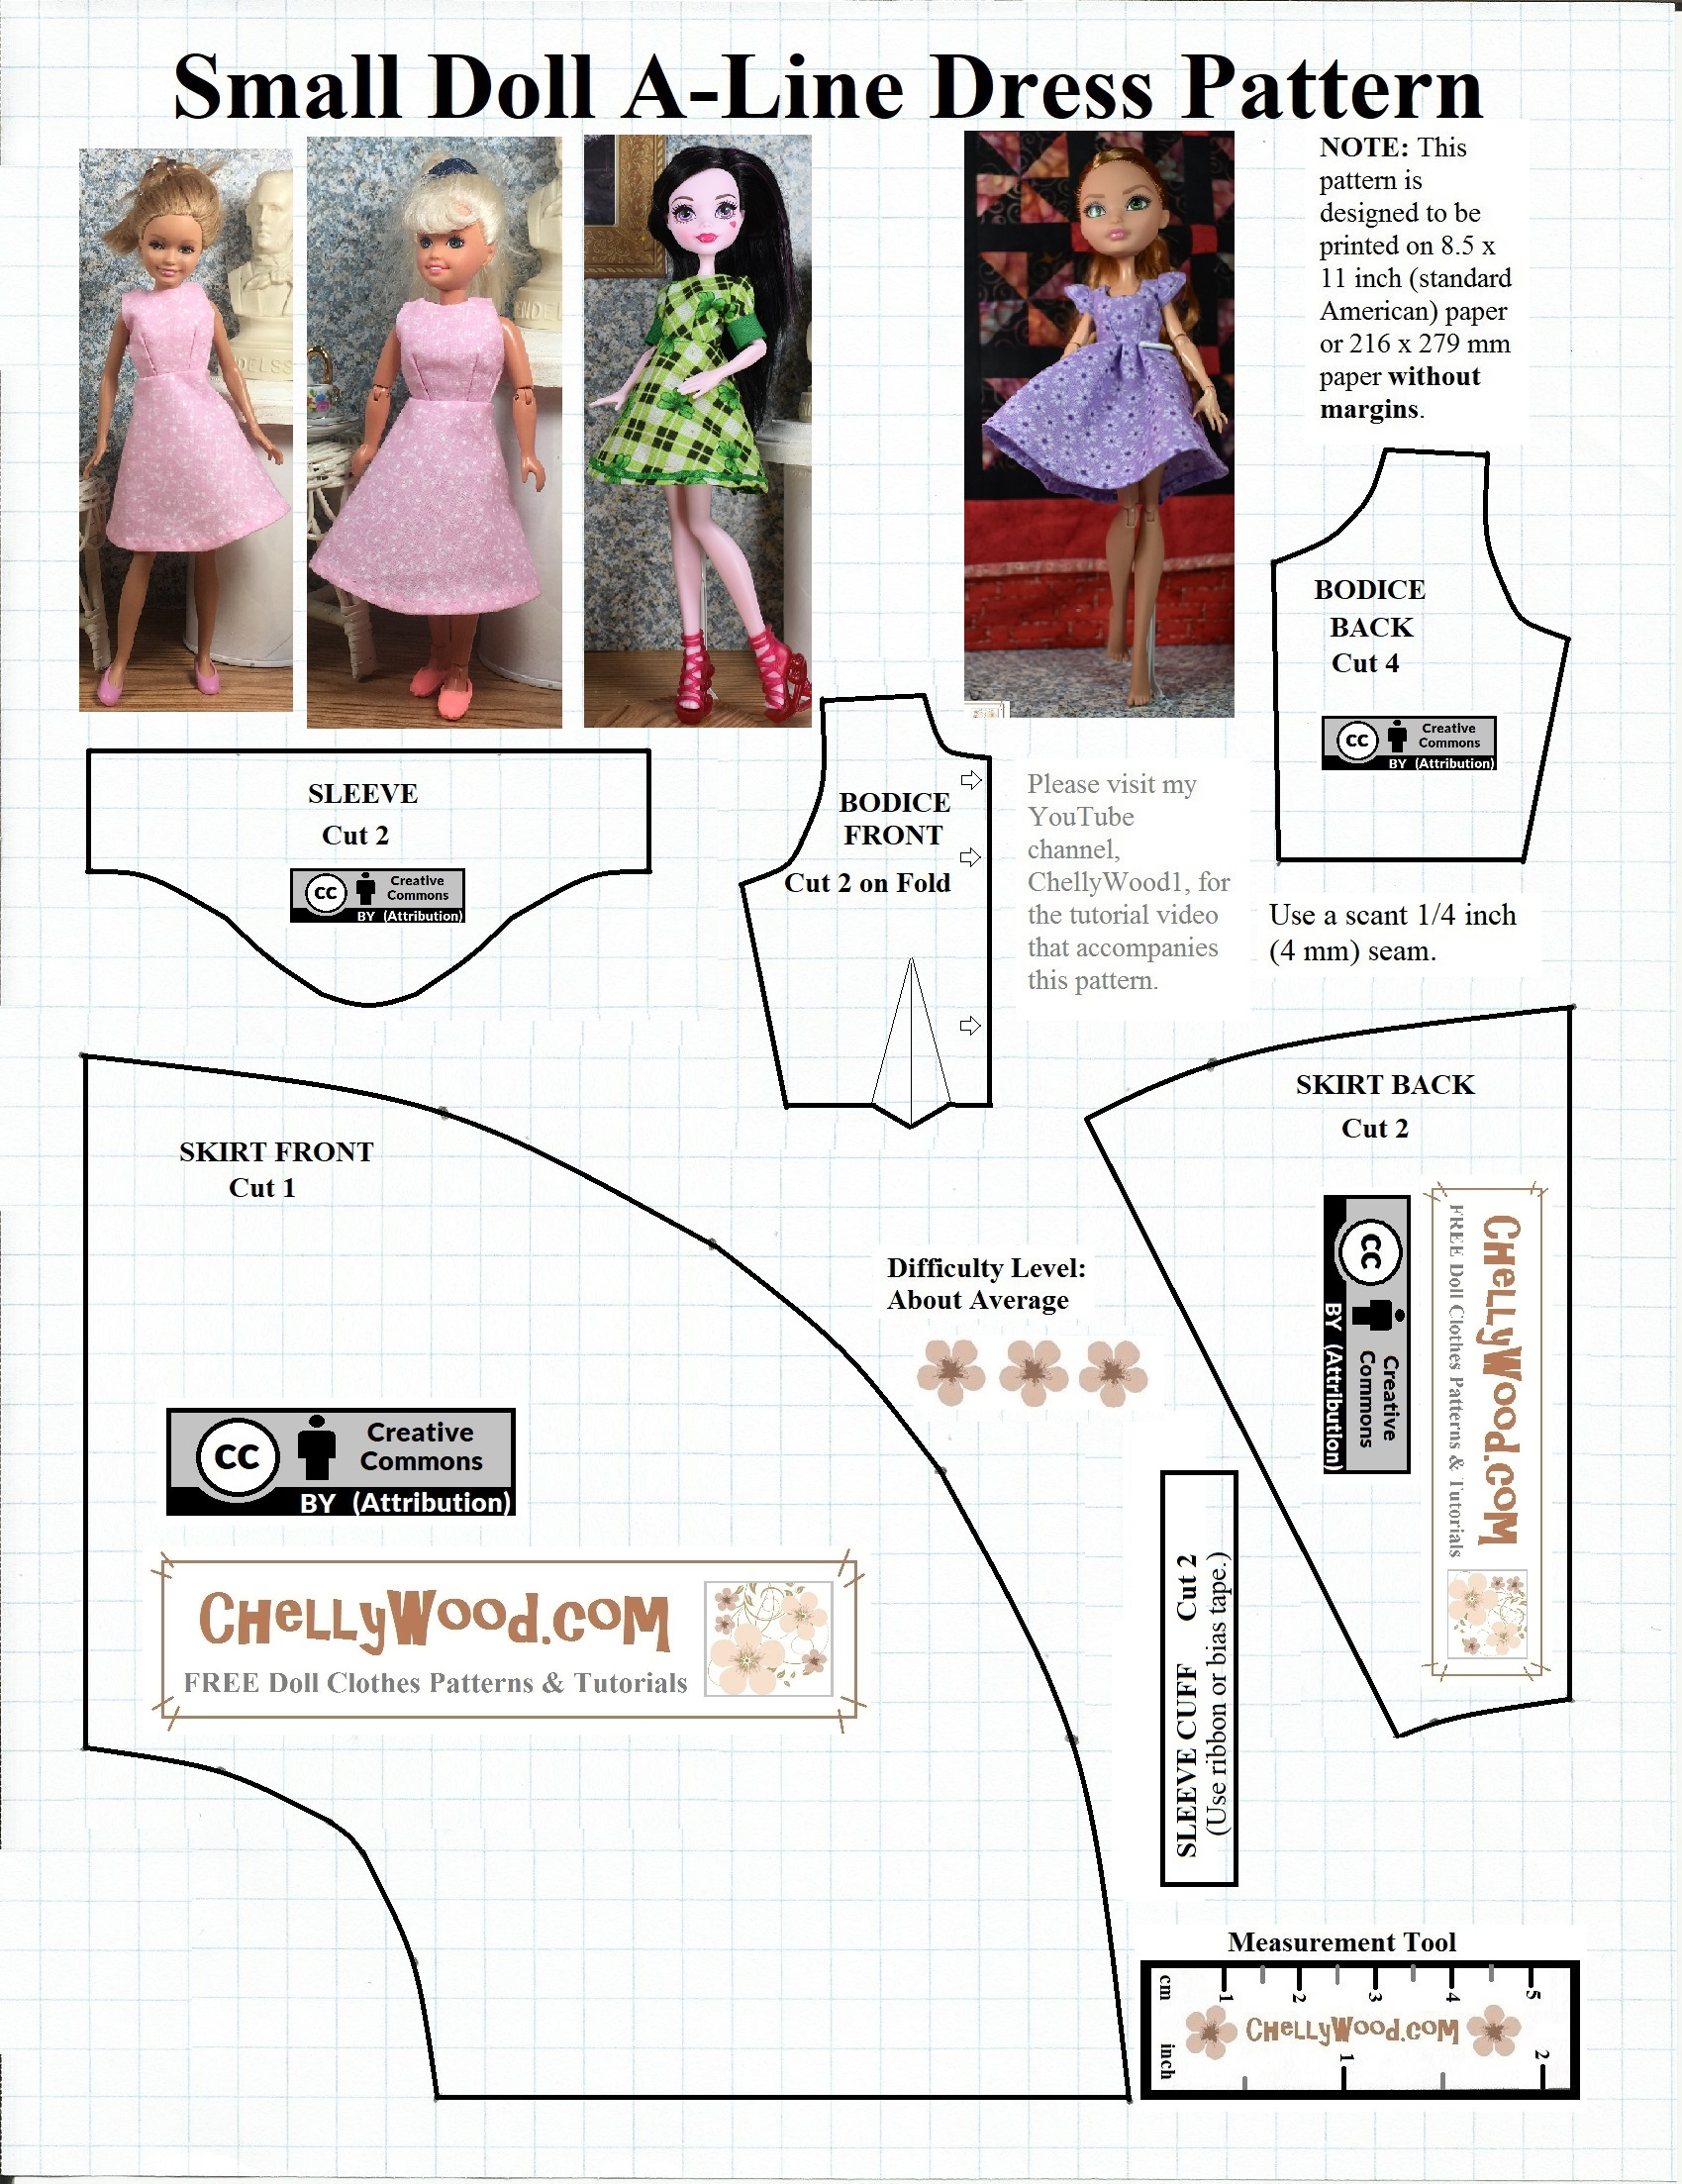 Free Monsterhigh Dolls Dress Pattern Chellywood Com Free Doll Clothes Patterns